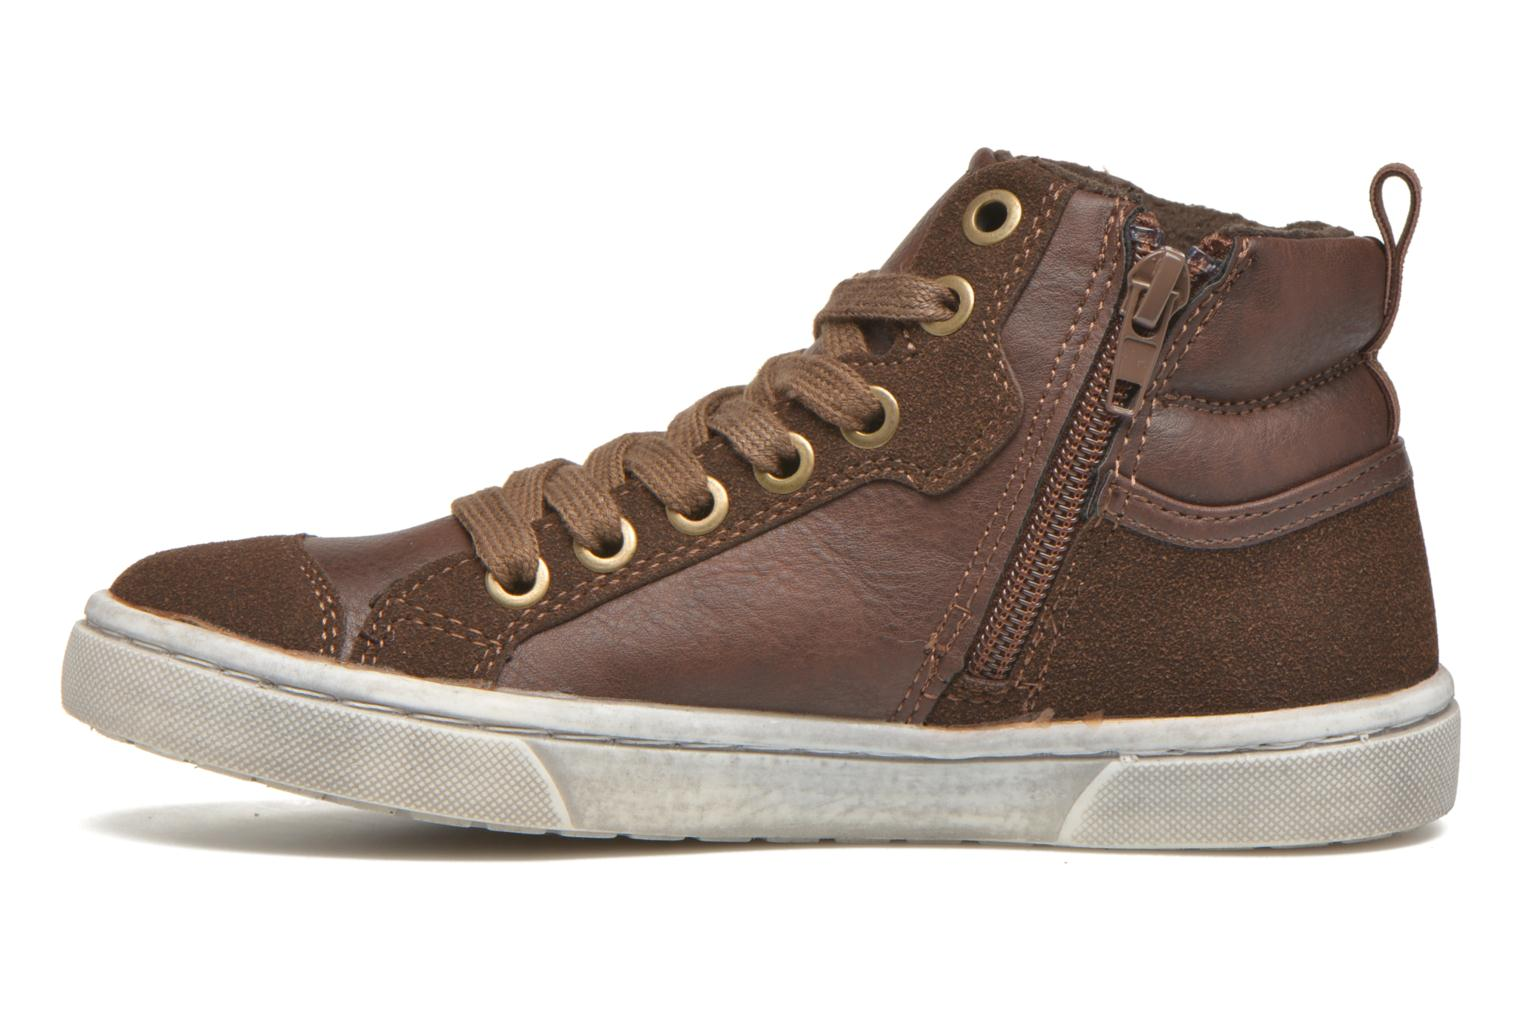 Brown I Love Shoes xEPHRE (Marron)